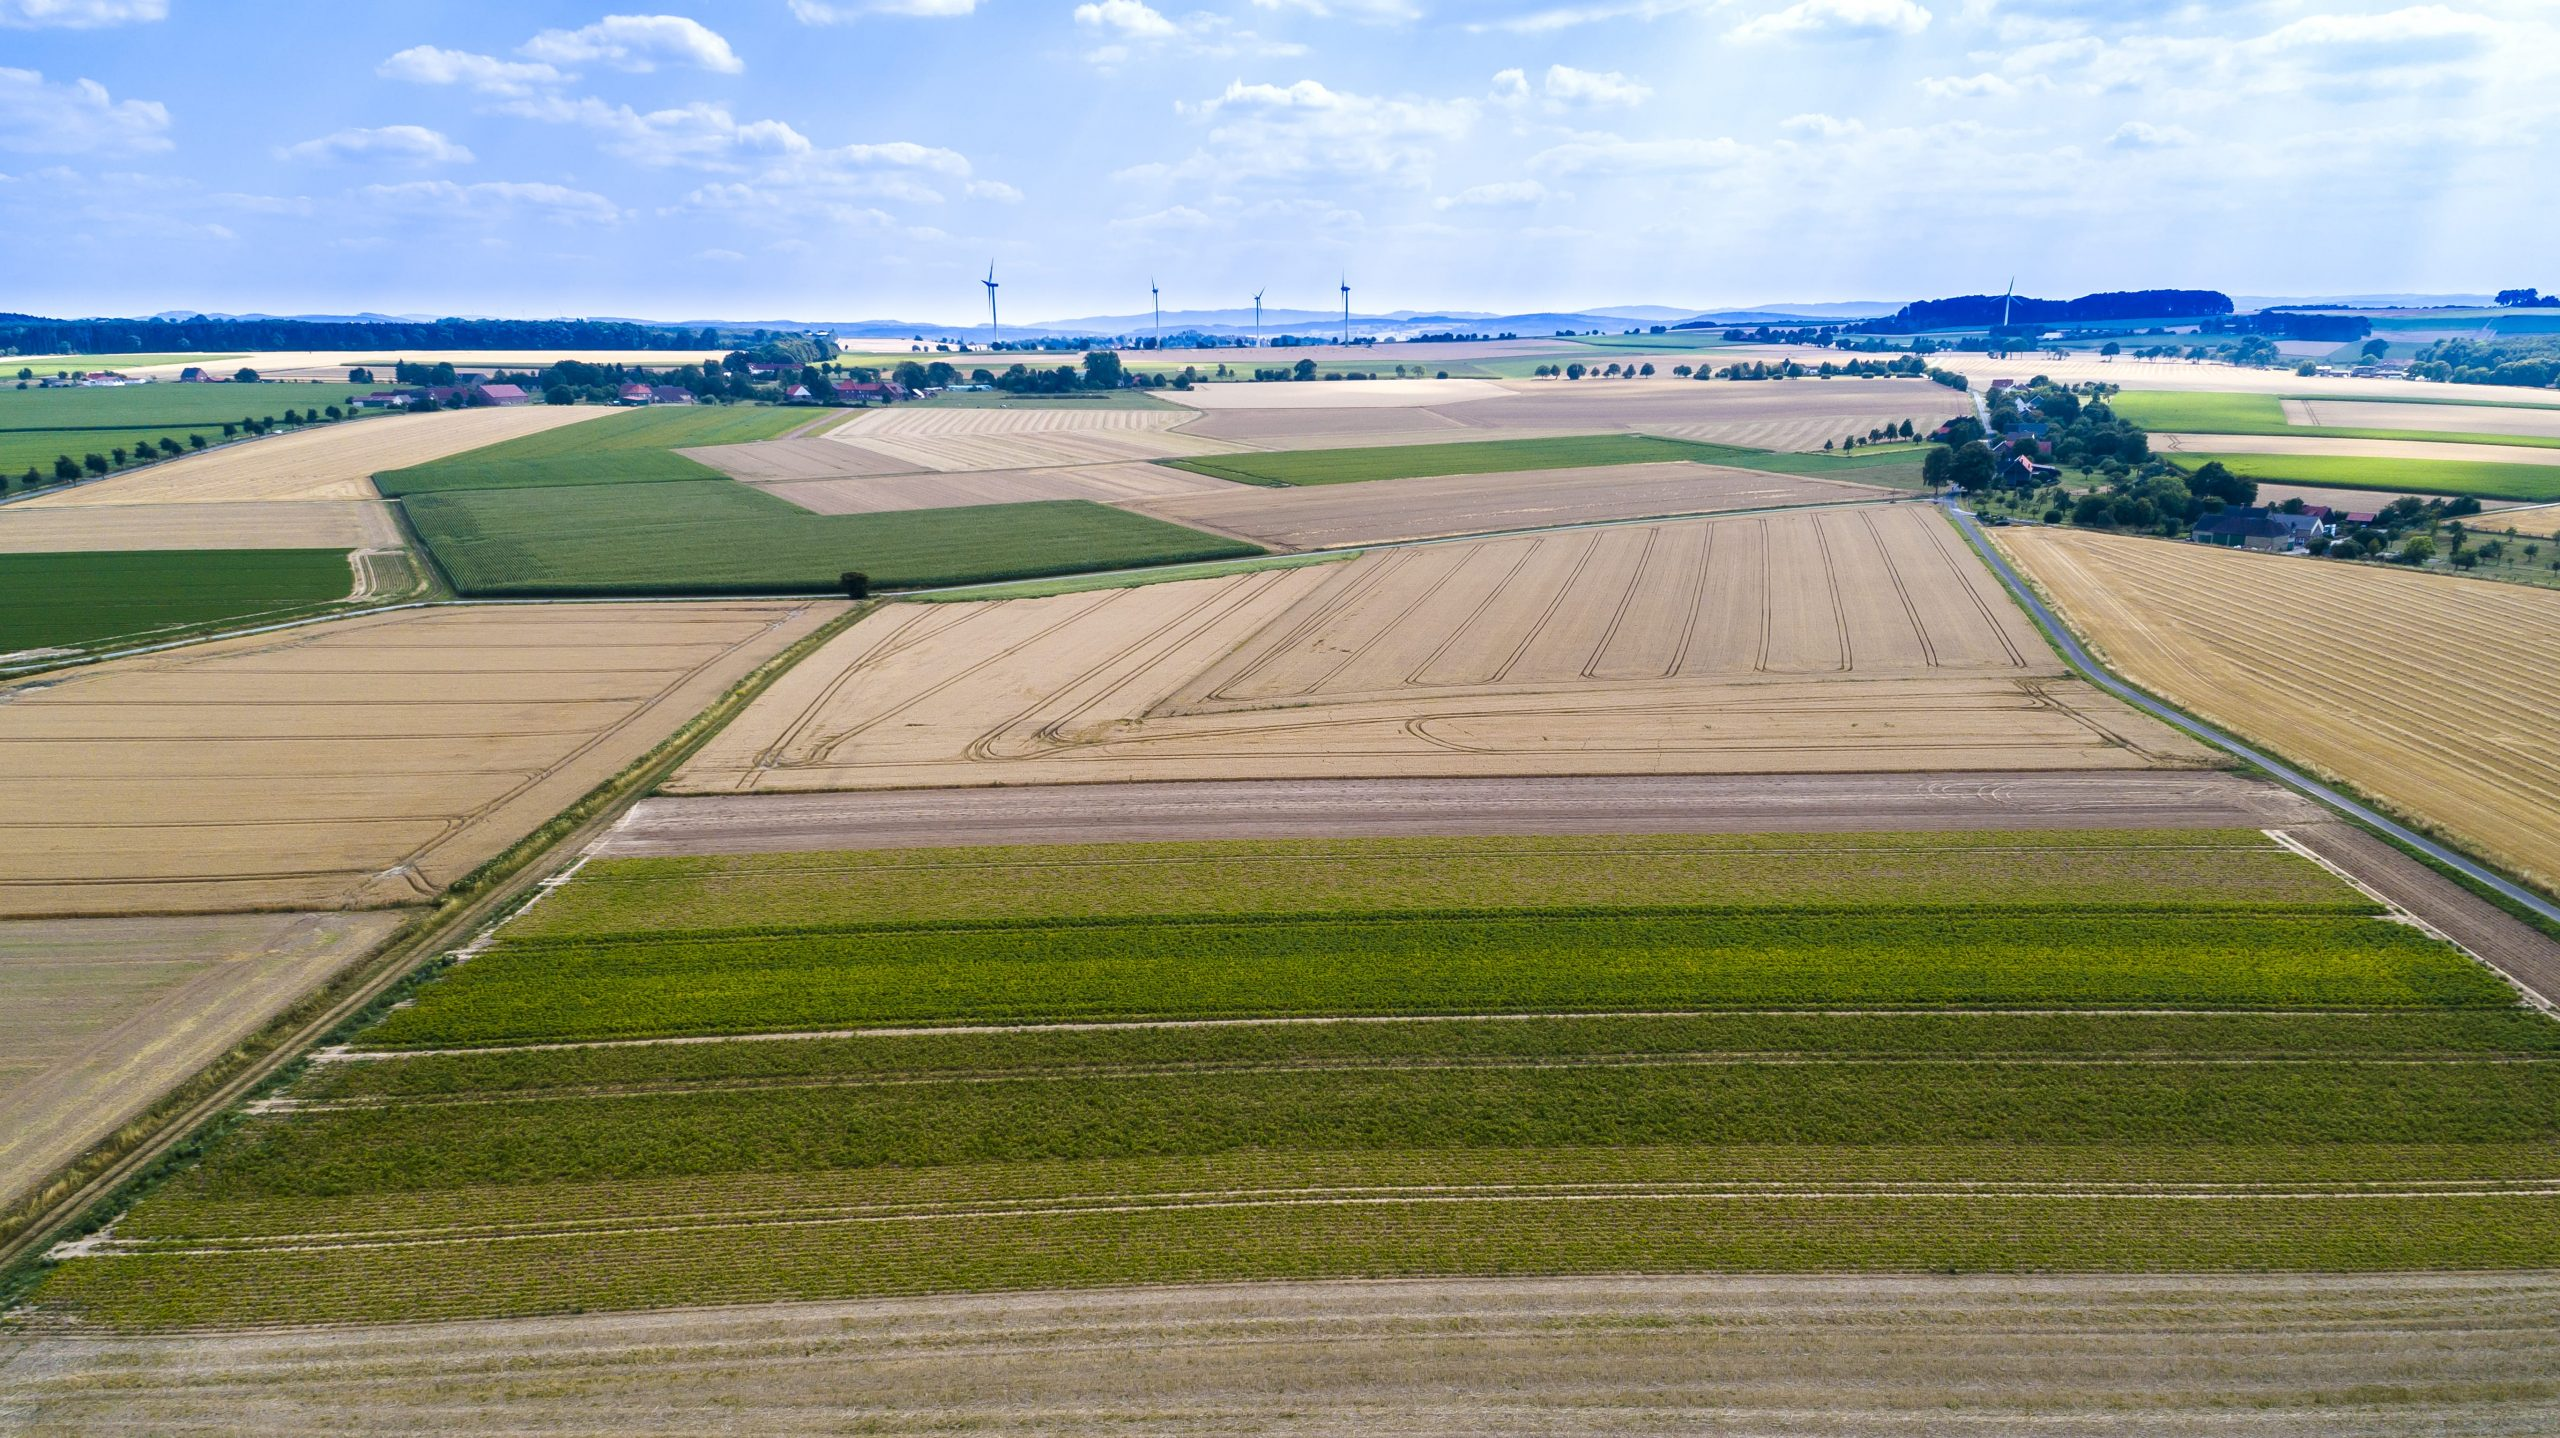 aerial-view-of-agricultural-fields-YX3QHJB